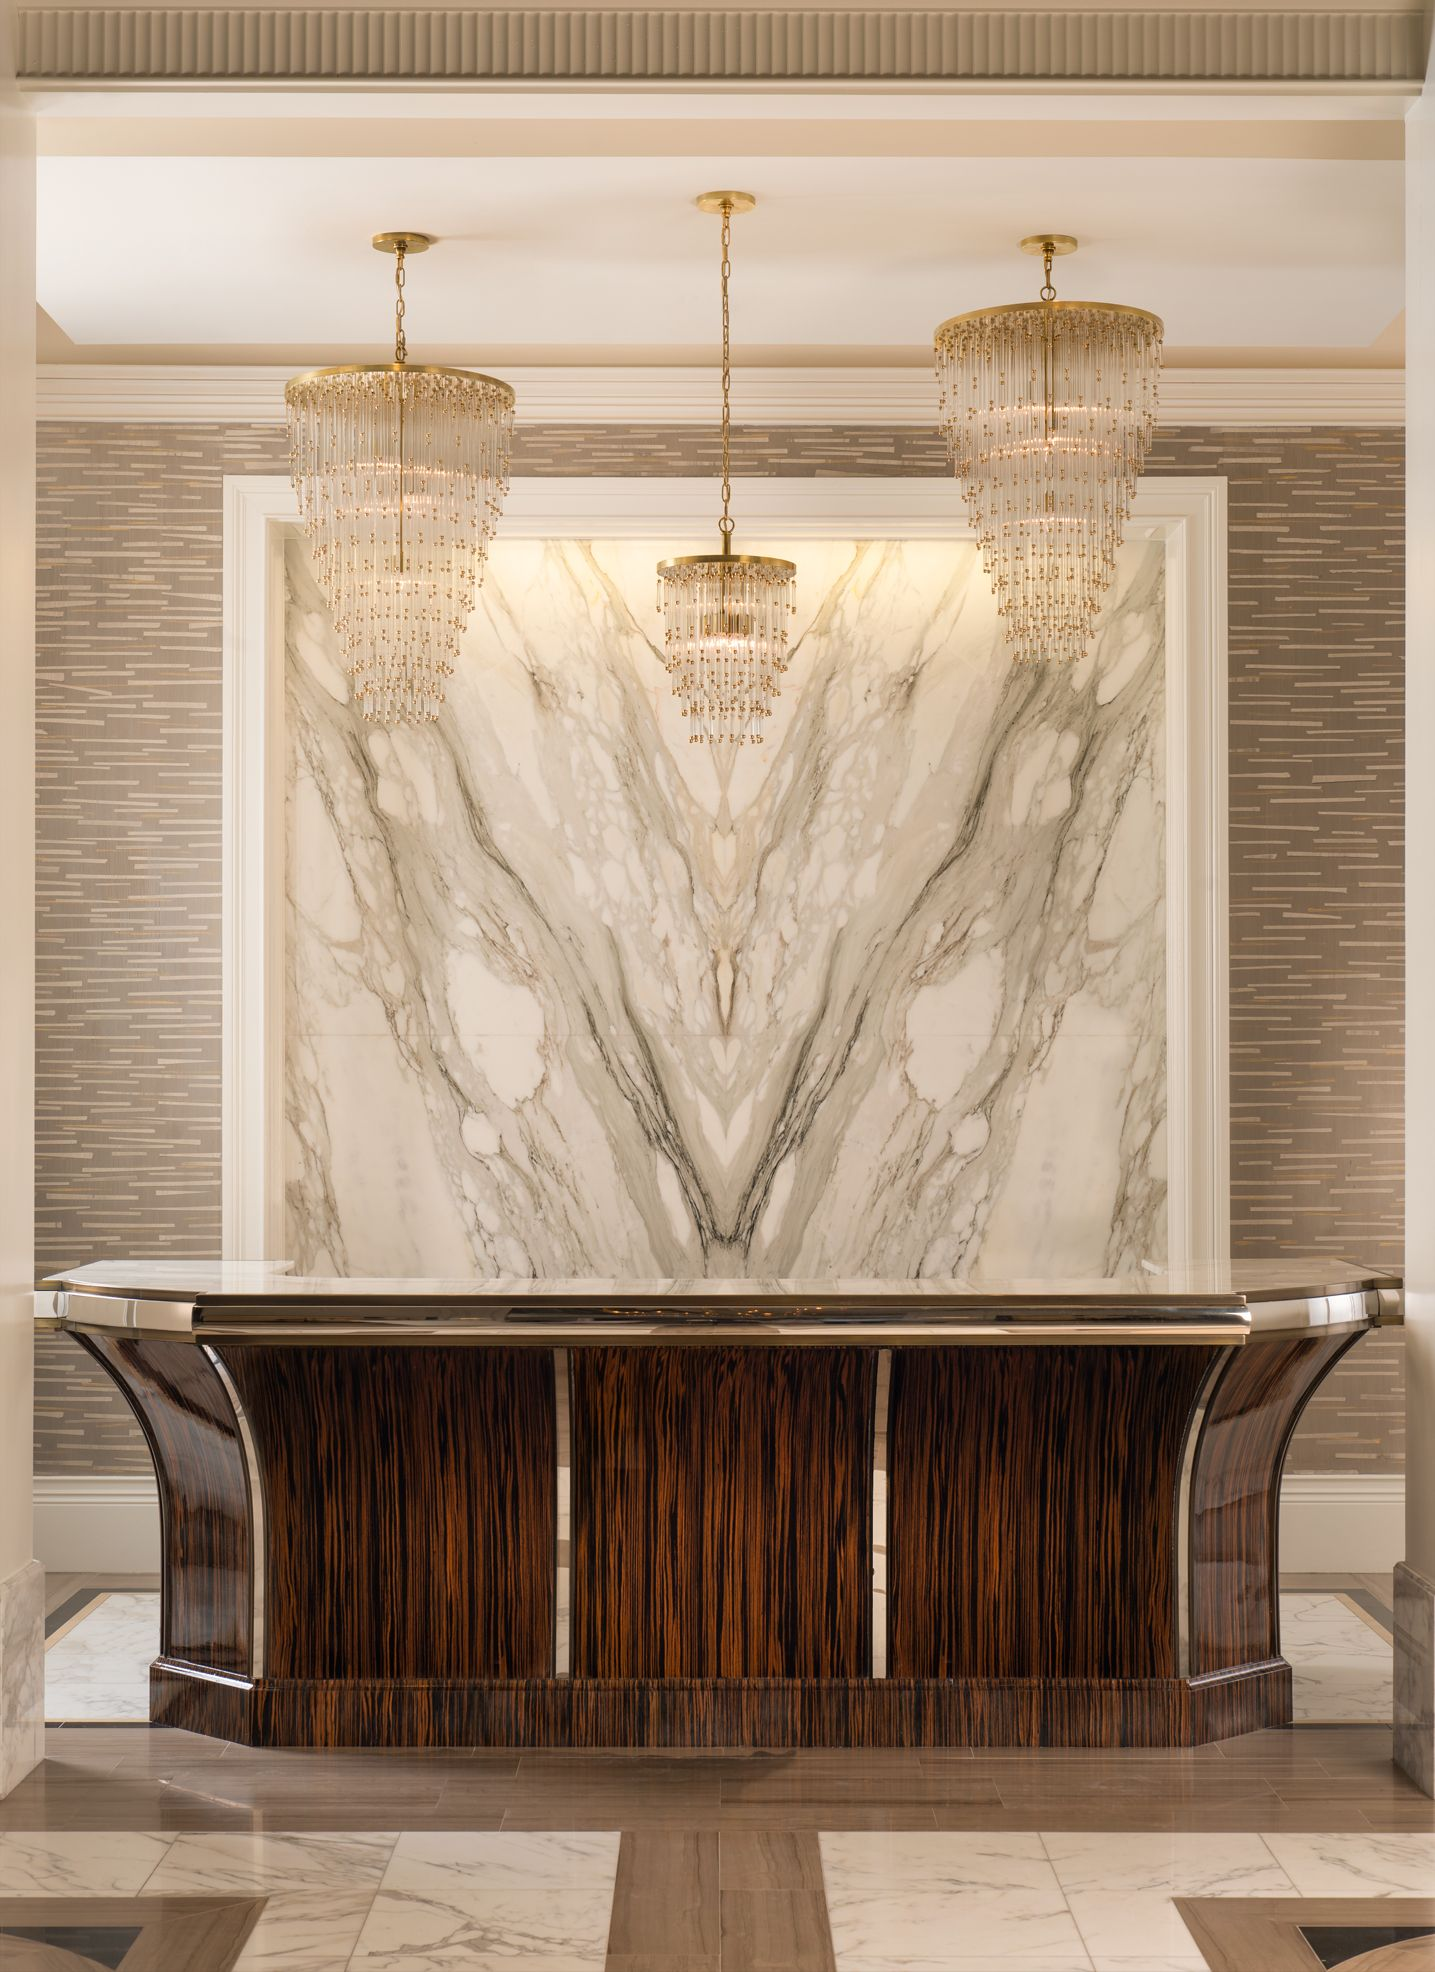 commercial | reception | lobby | design | interiors